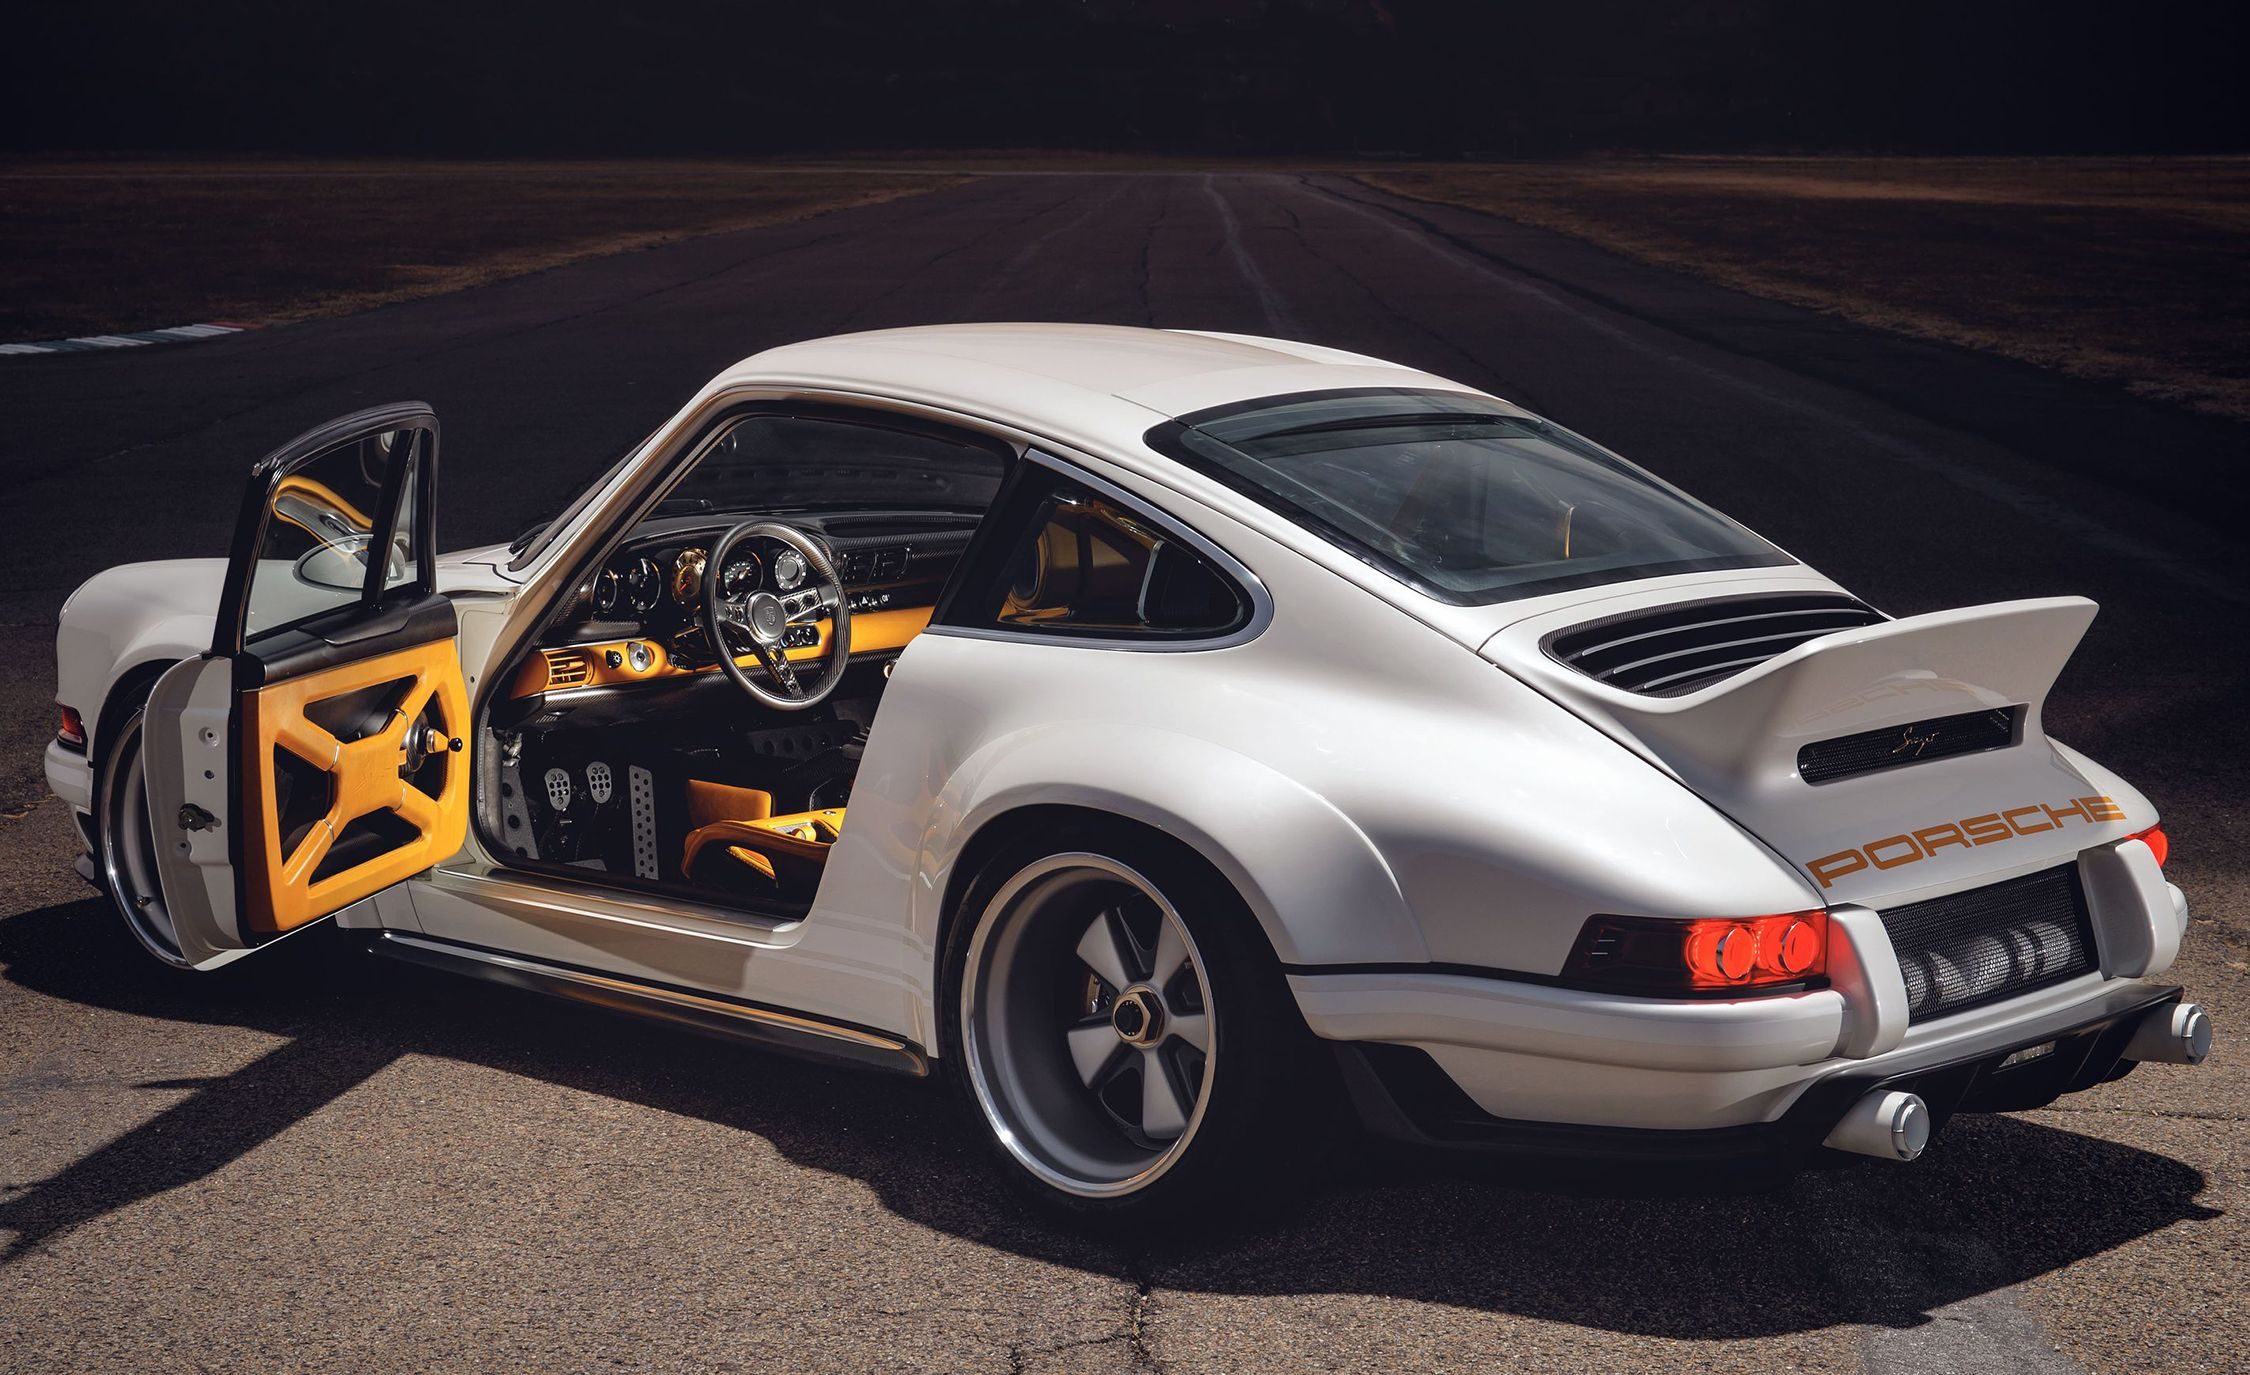 Singer And Williams S Wildly Reimagined 500 Hp Porsche 911 Is Beyond Incredible